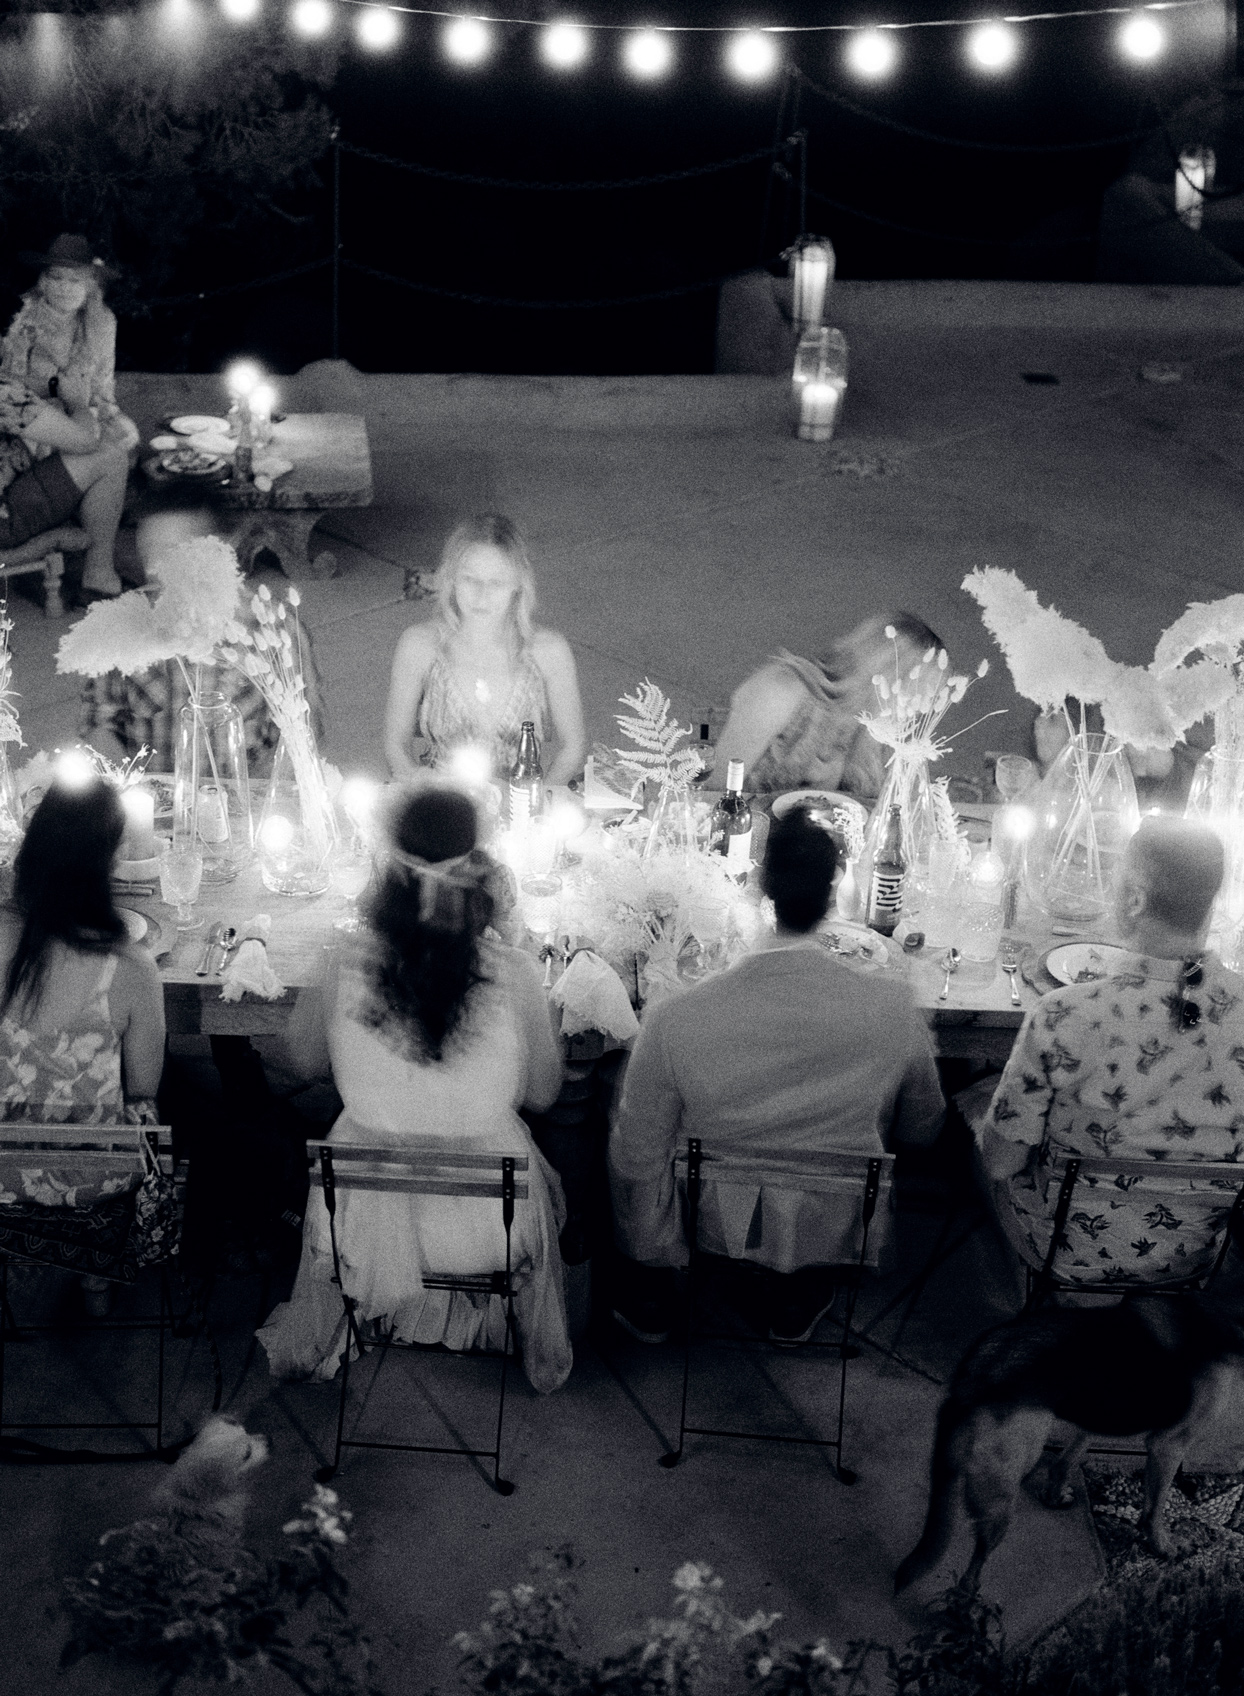 Black and white photo of bride and groom at dinner table